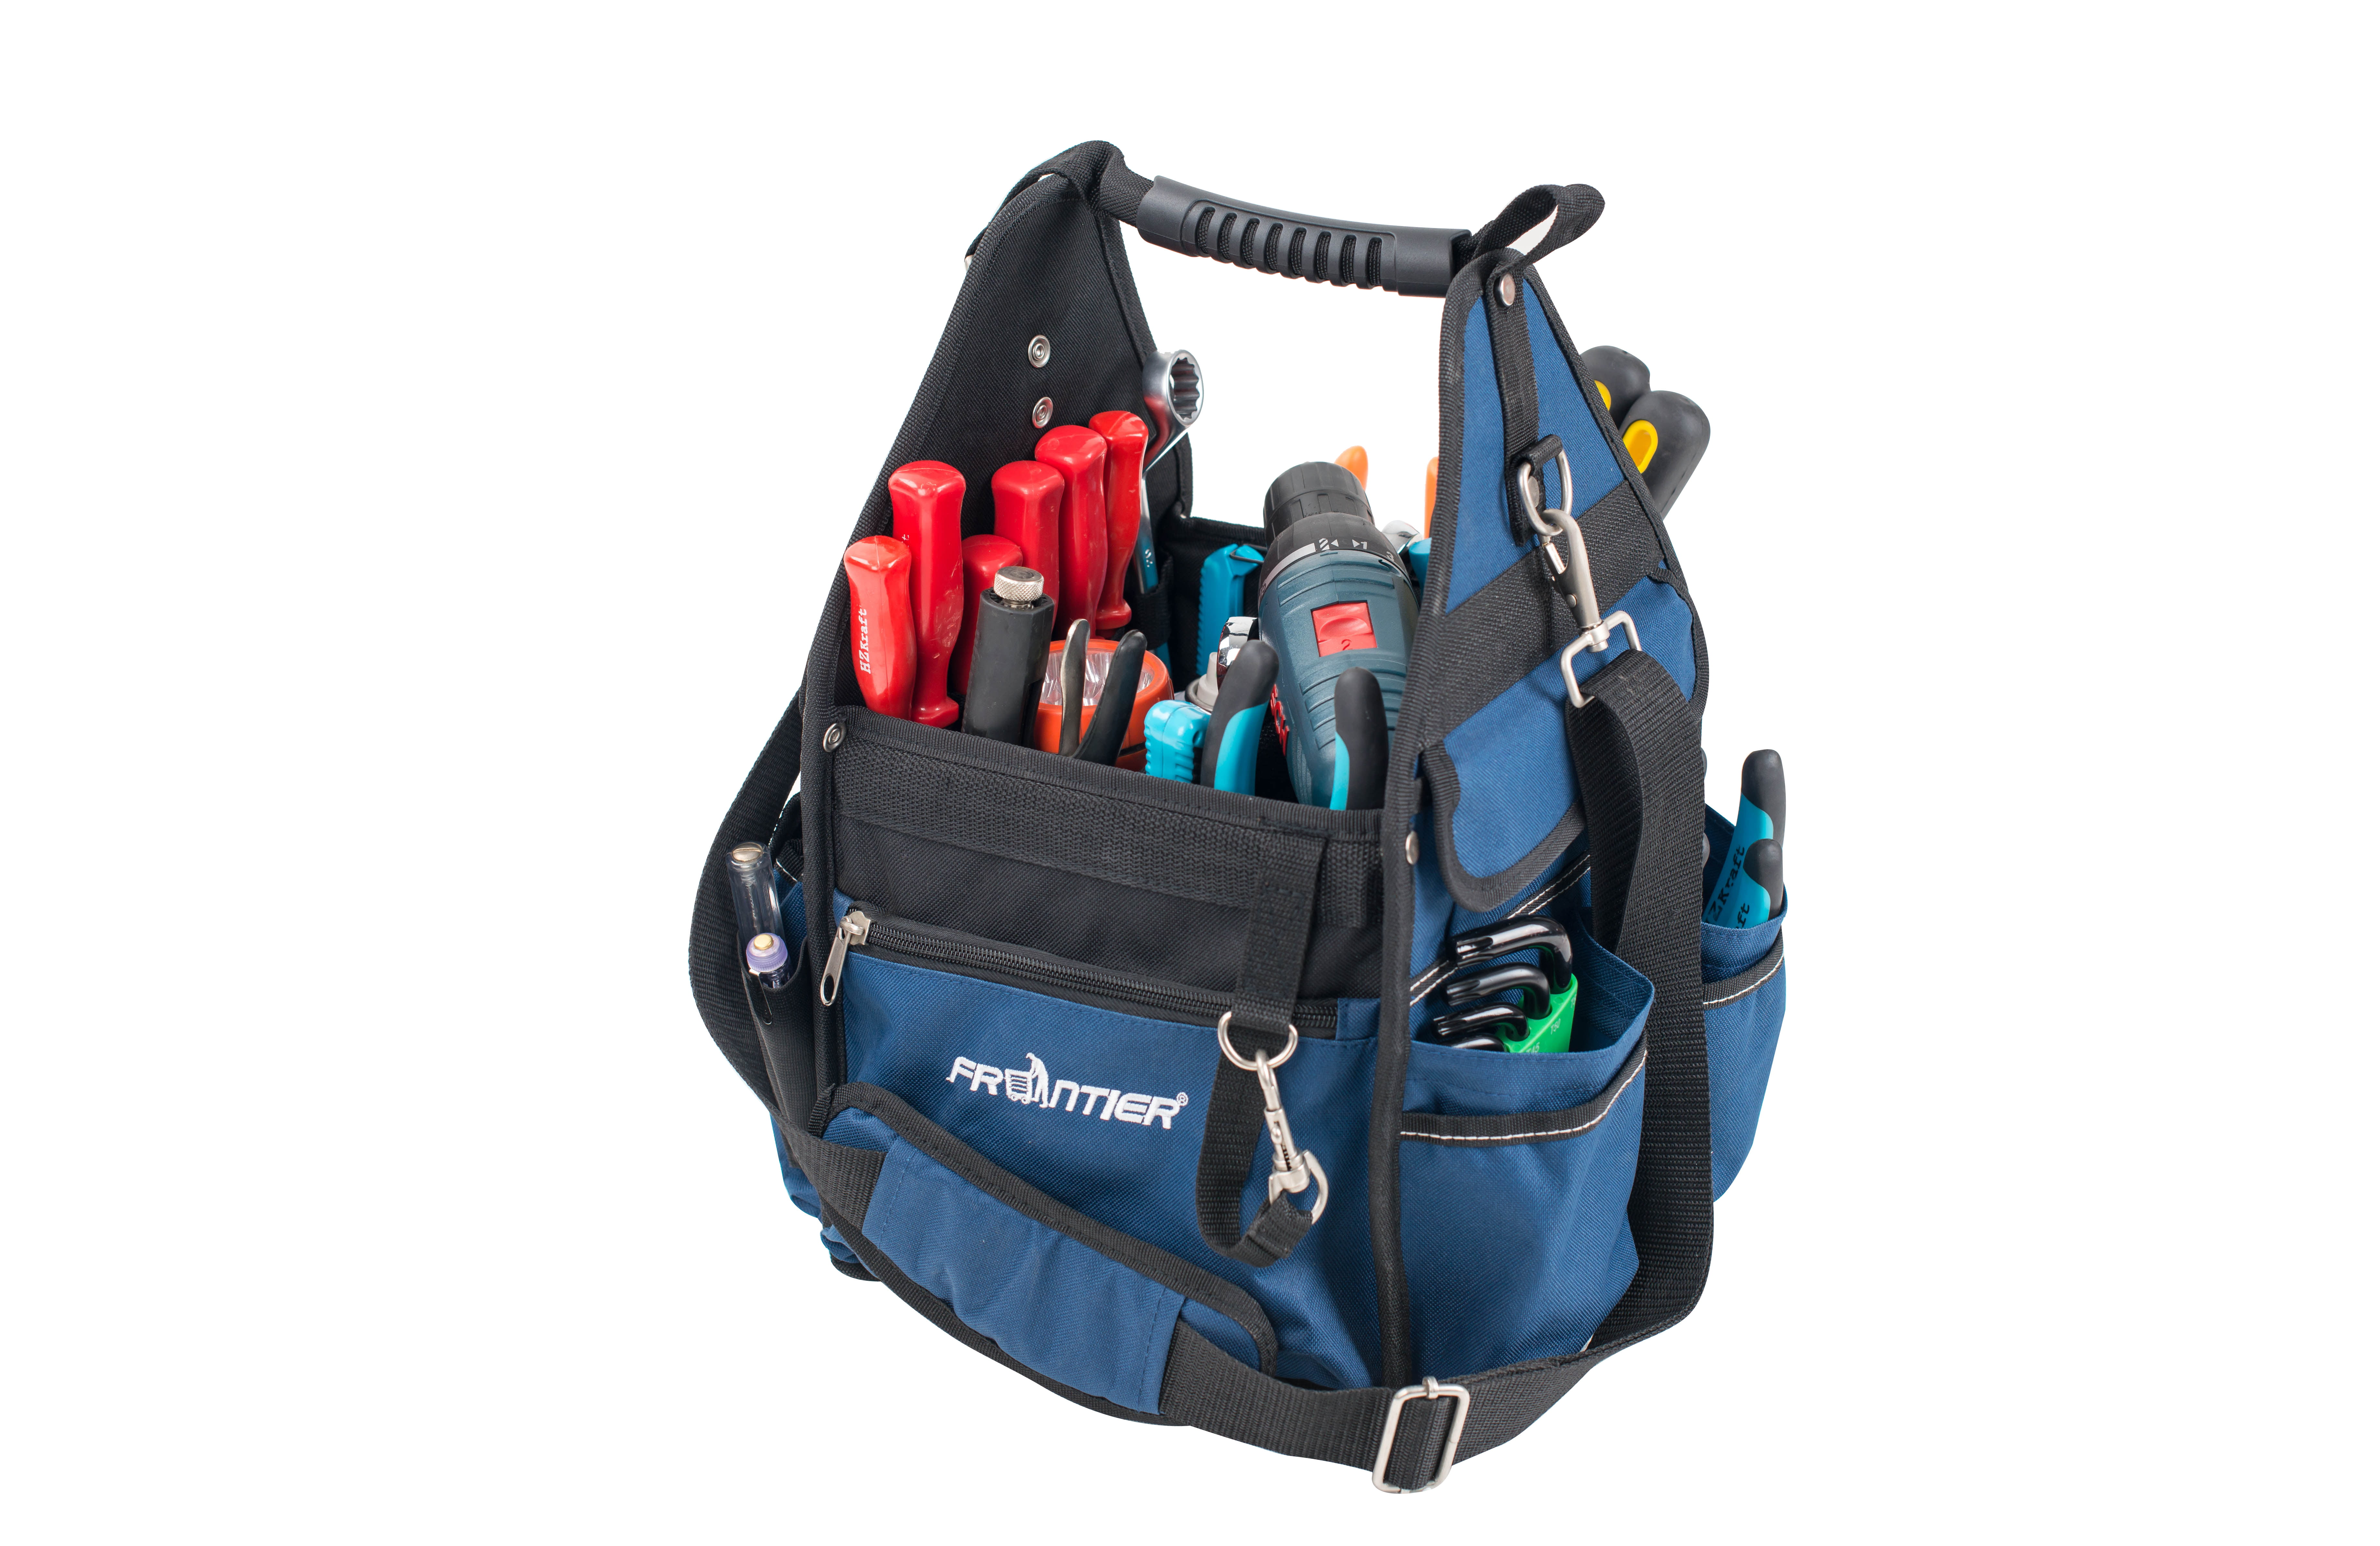 FRONTIER Premium 10 inch Open Soft Sided Electrician's Tool Bag Tote by XDD Products (USA) LLC